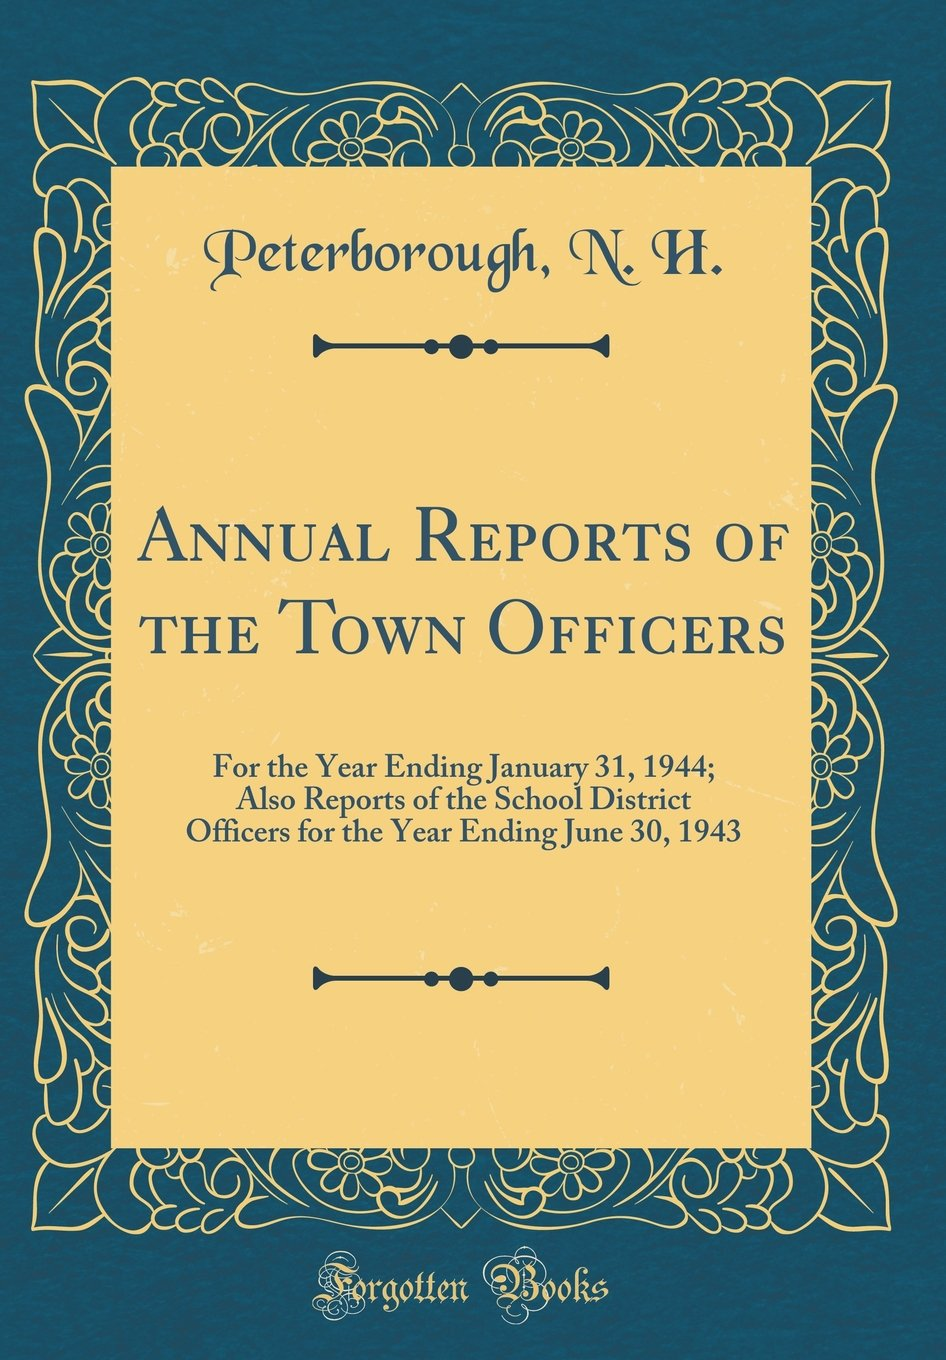 Read Online Annual Reports of the Town Officers: For the Year Ending January 31, 1944; Also Reports of the School District Officers for the Year Ending June 30, 1943 (Classic Reprint) pdf